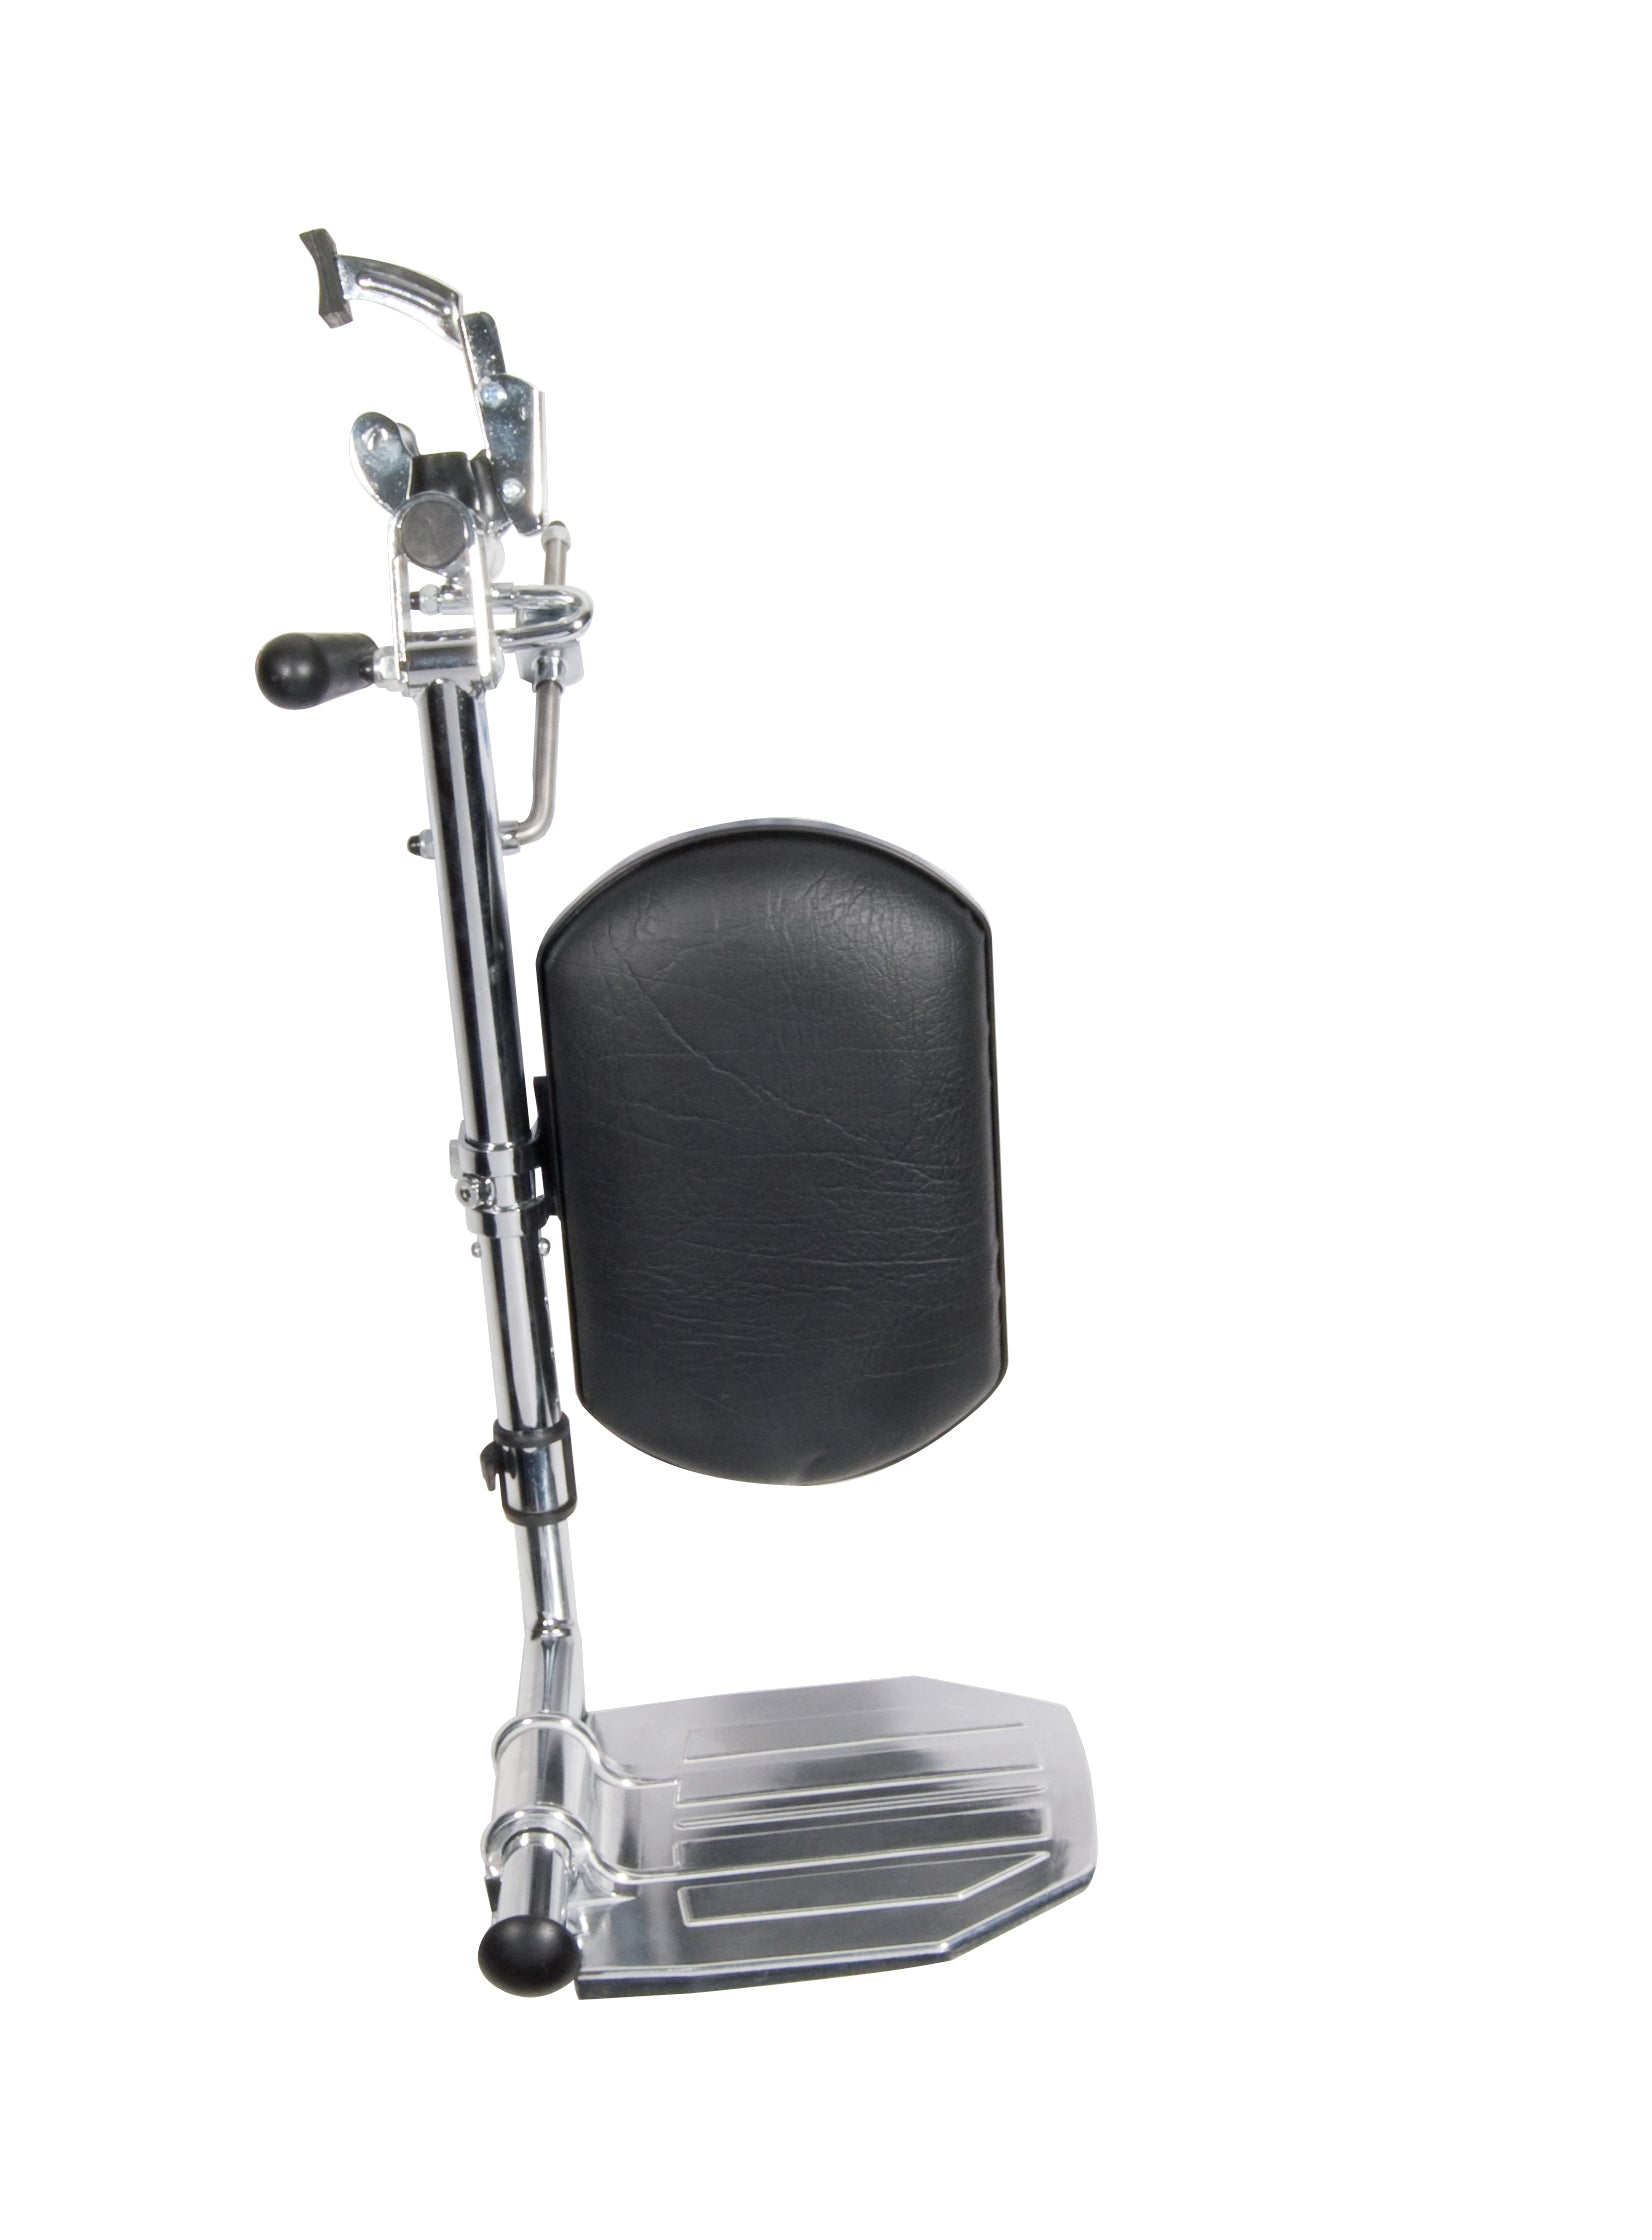 Drive Elevating Legrests for Bariatric Sentra Wheelchairs- 1 Pair